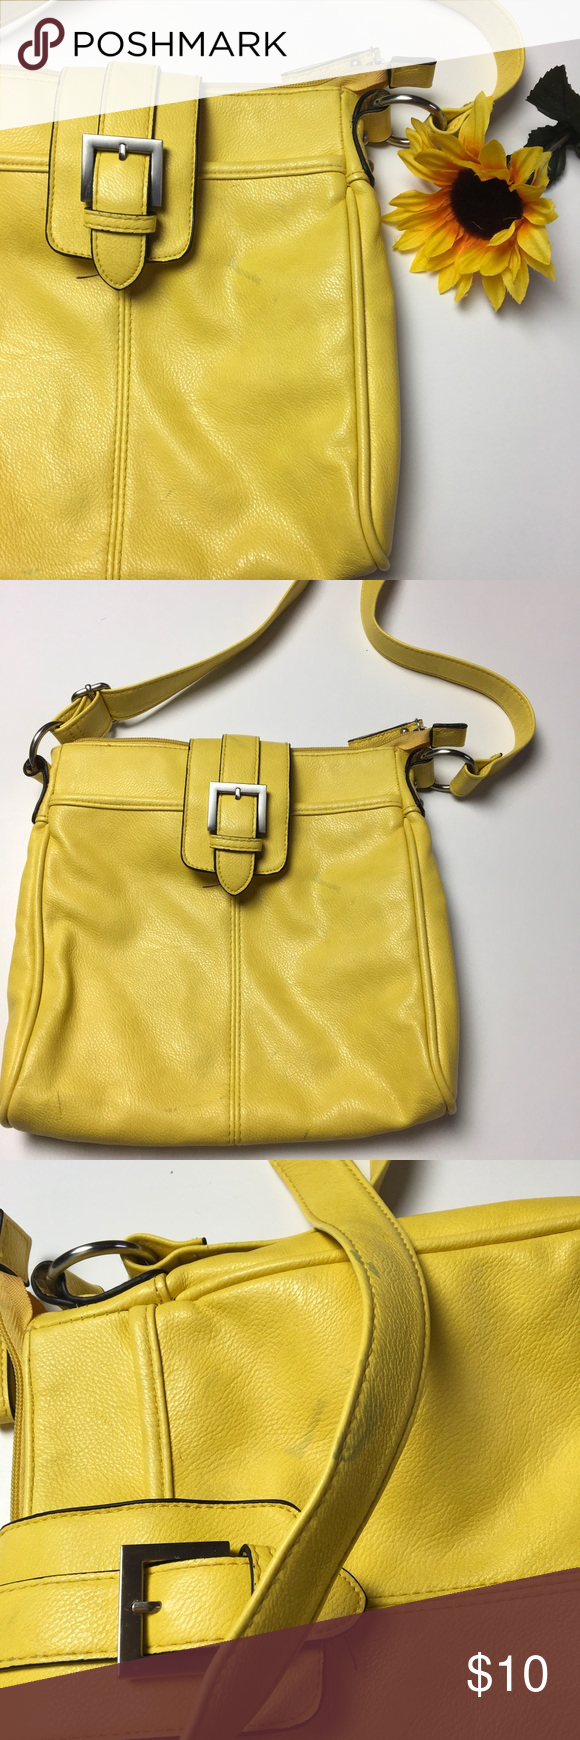 Yellow Messenger Cross Body Bag ⭐️ Super pretty color. Has some blue marks on it. I'm not sure how they got there. Otherwise it's in great condition. Merona Bags